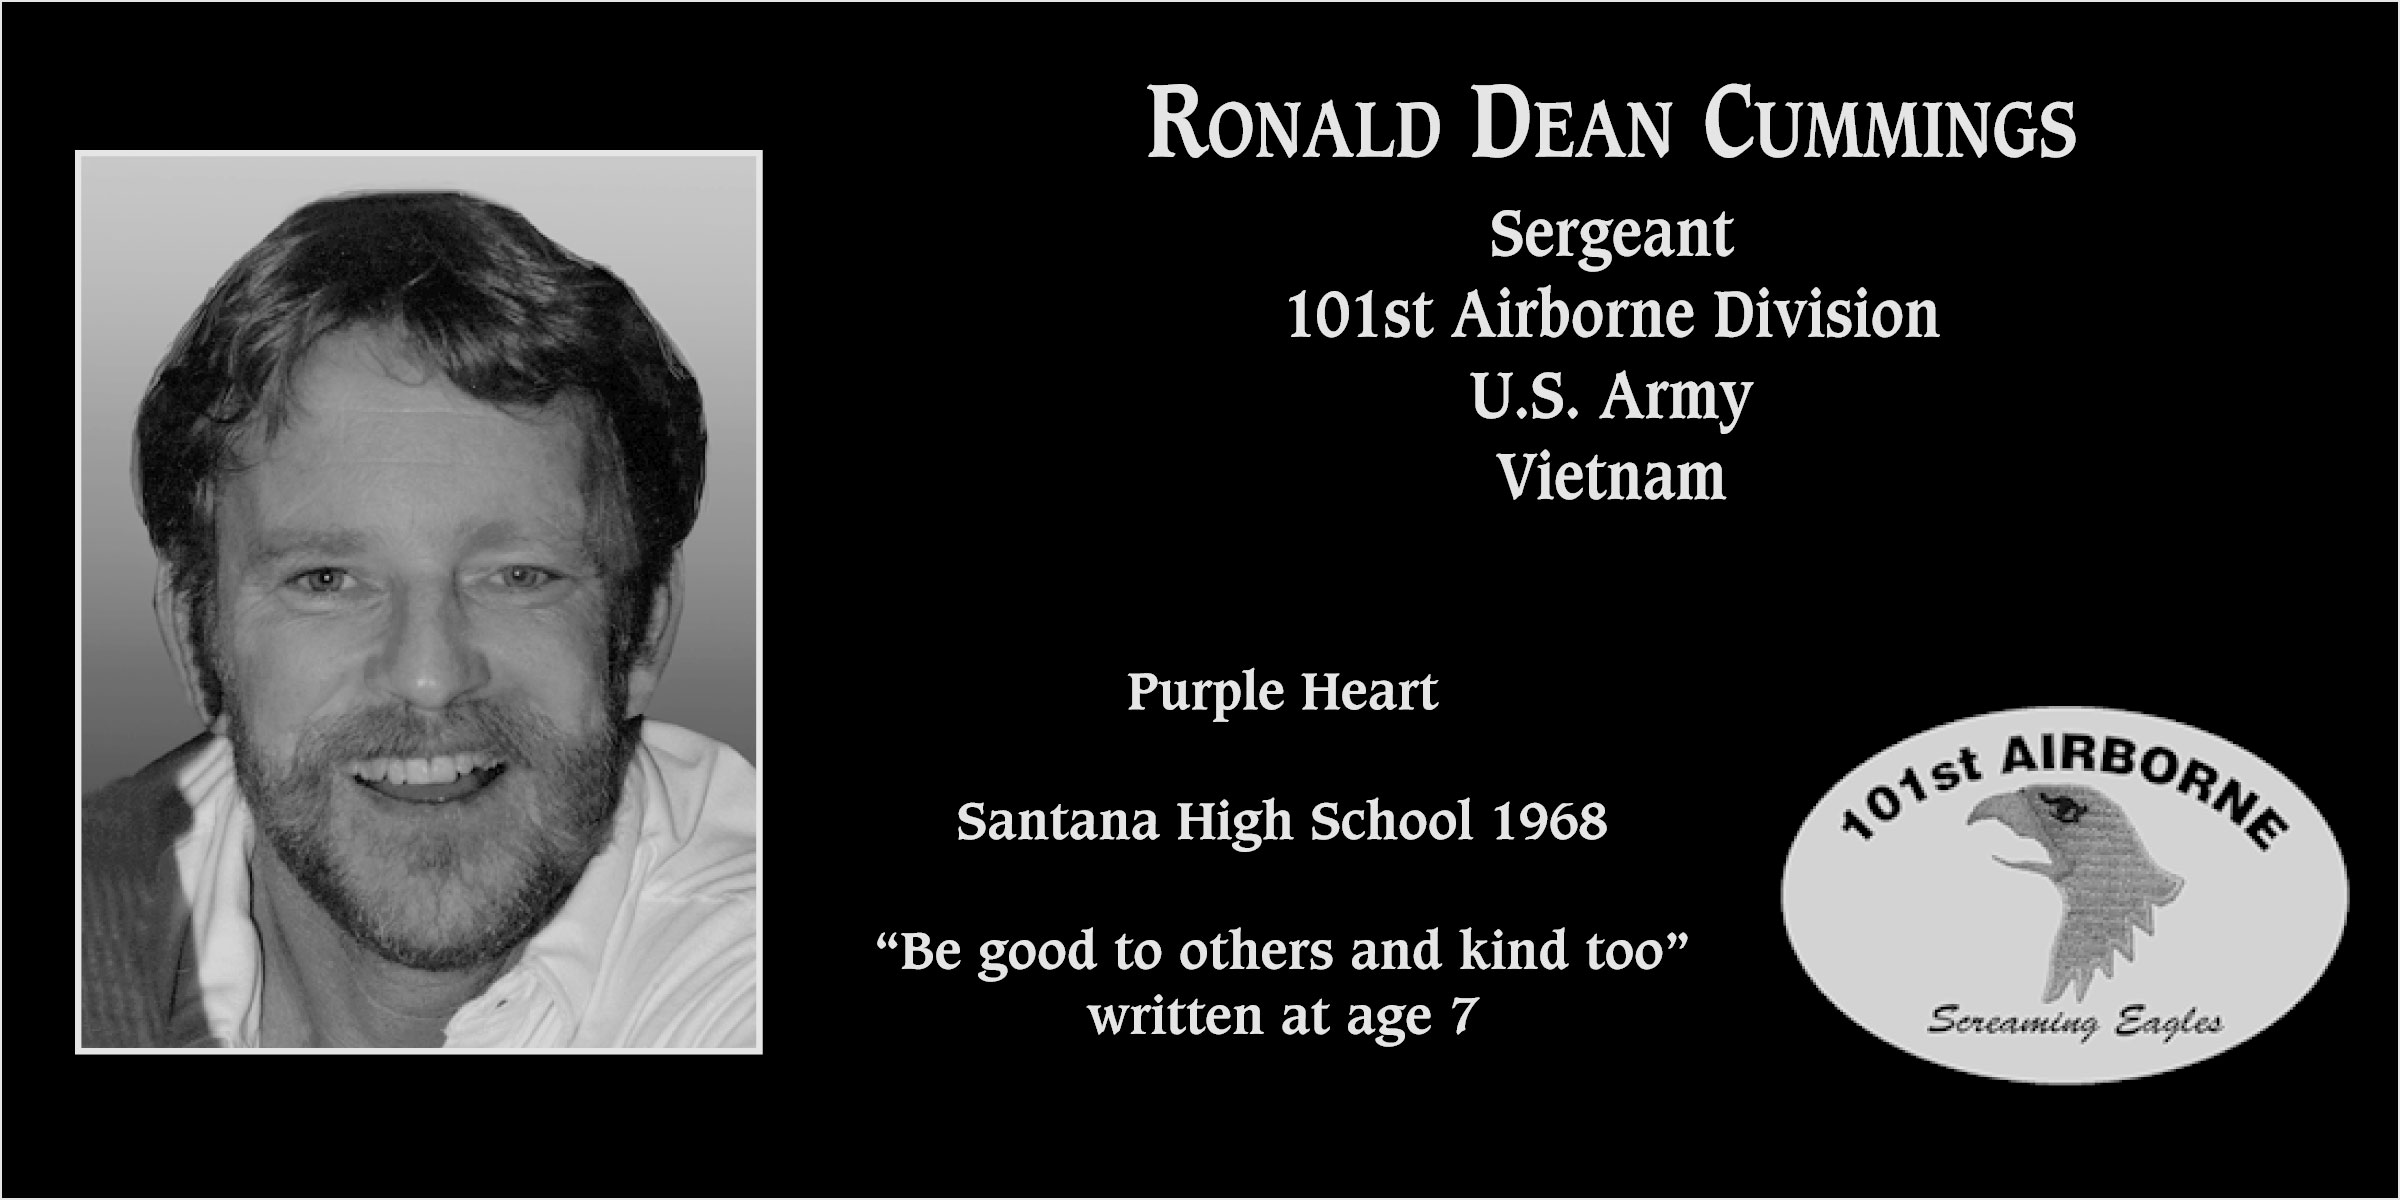 Ronald Dean Cummings